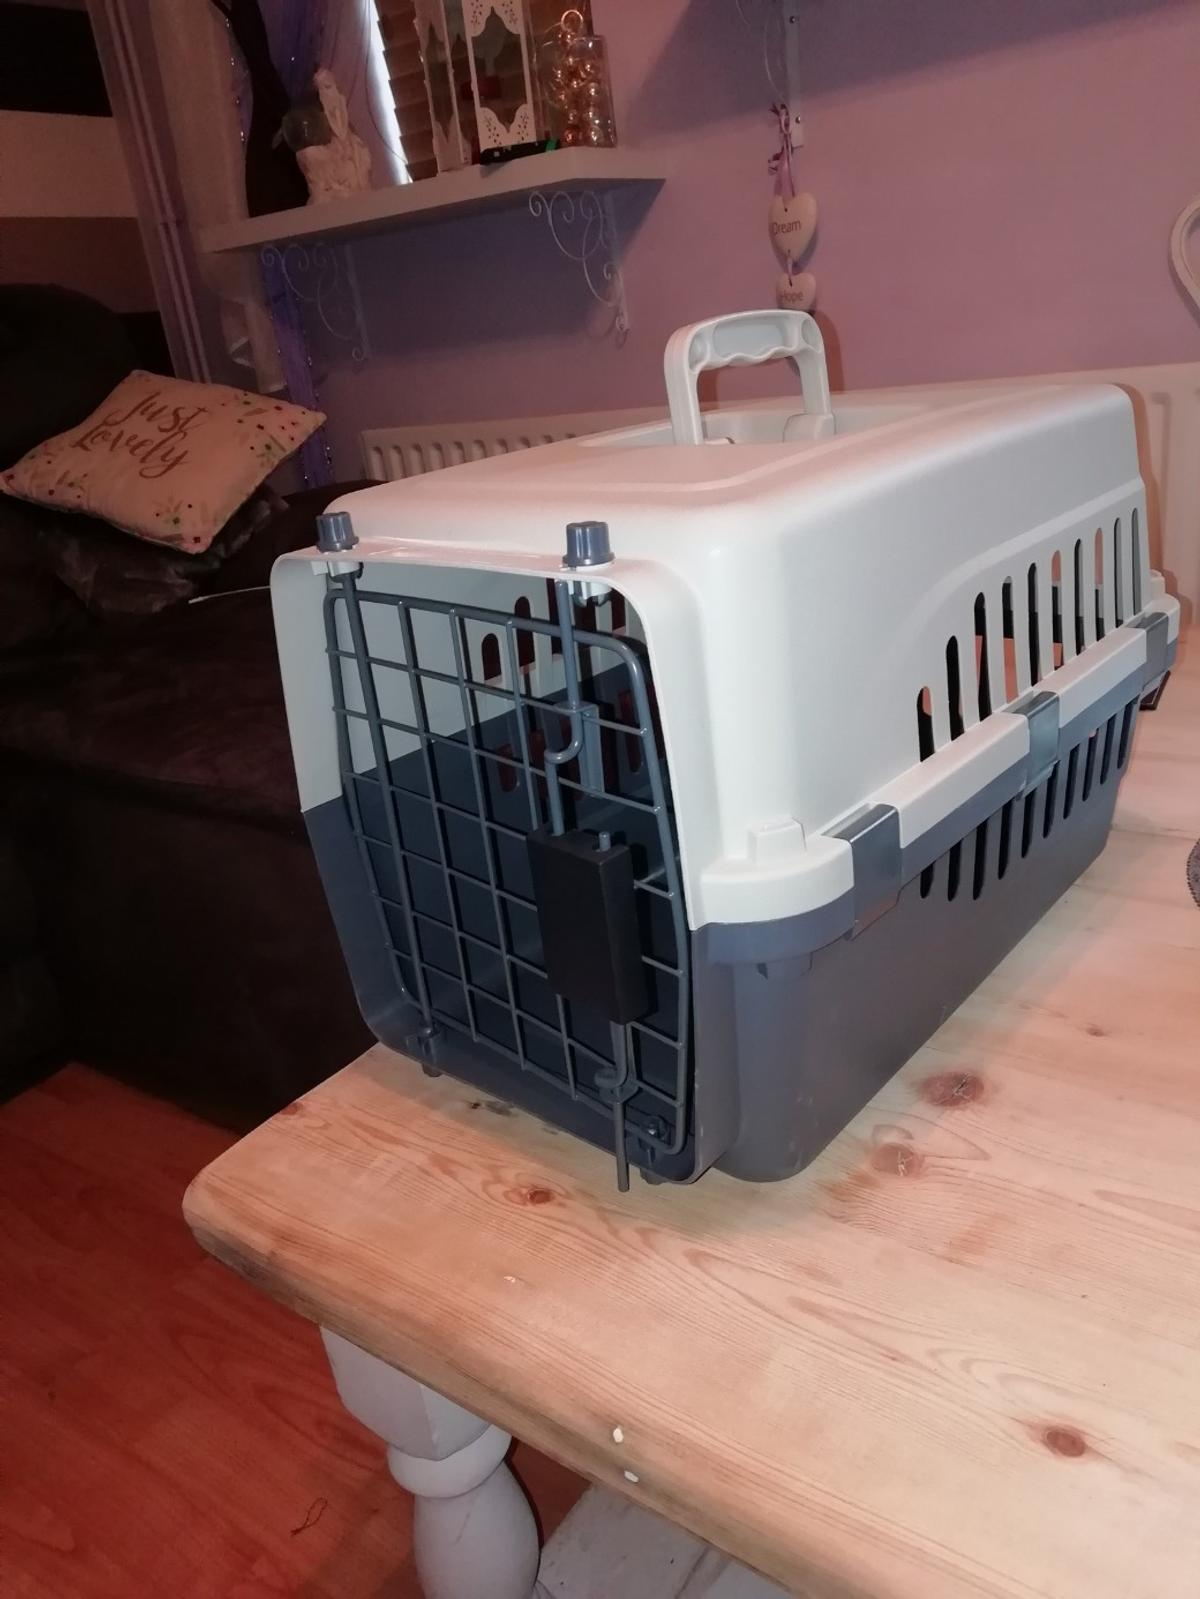 New cat carrier. Unwanted gift